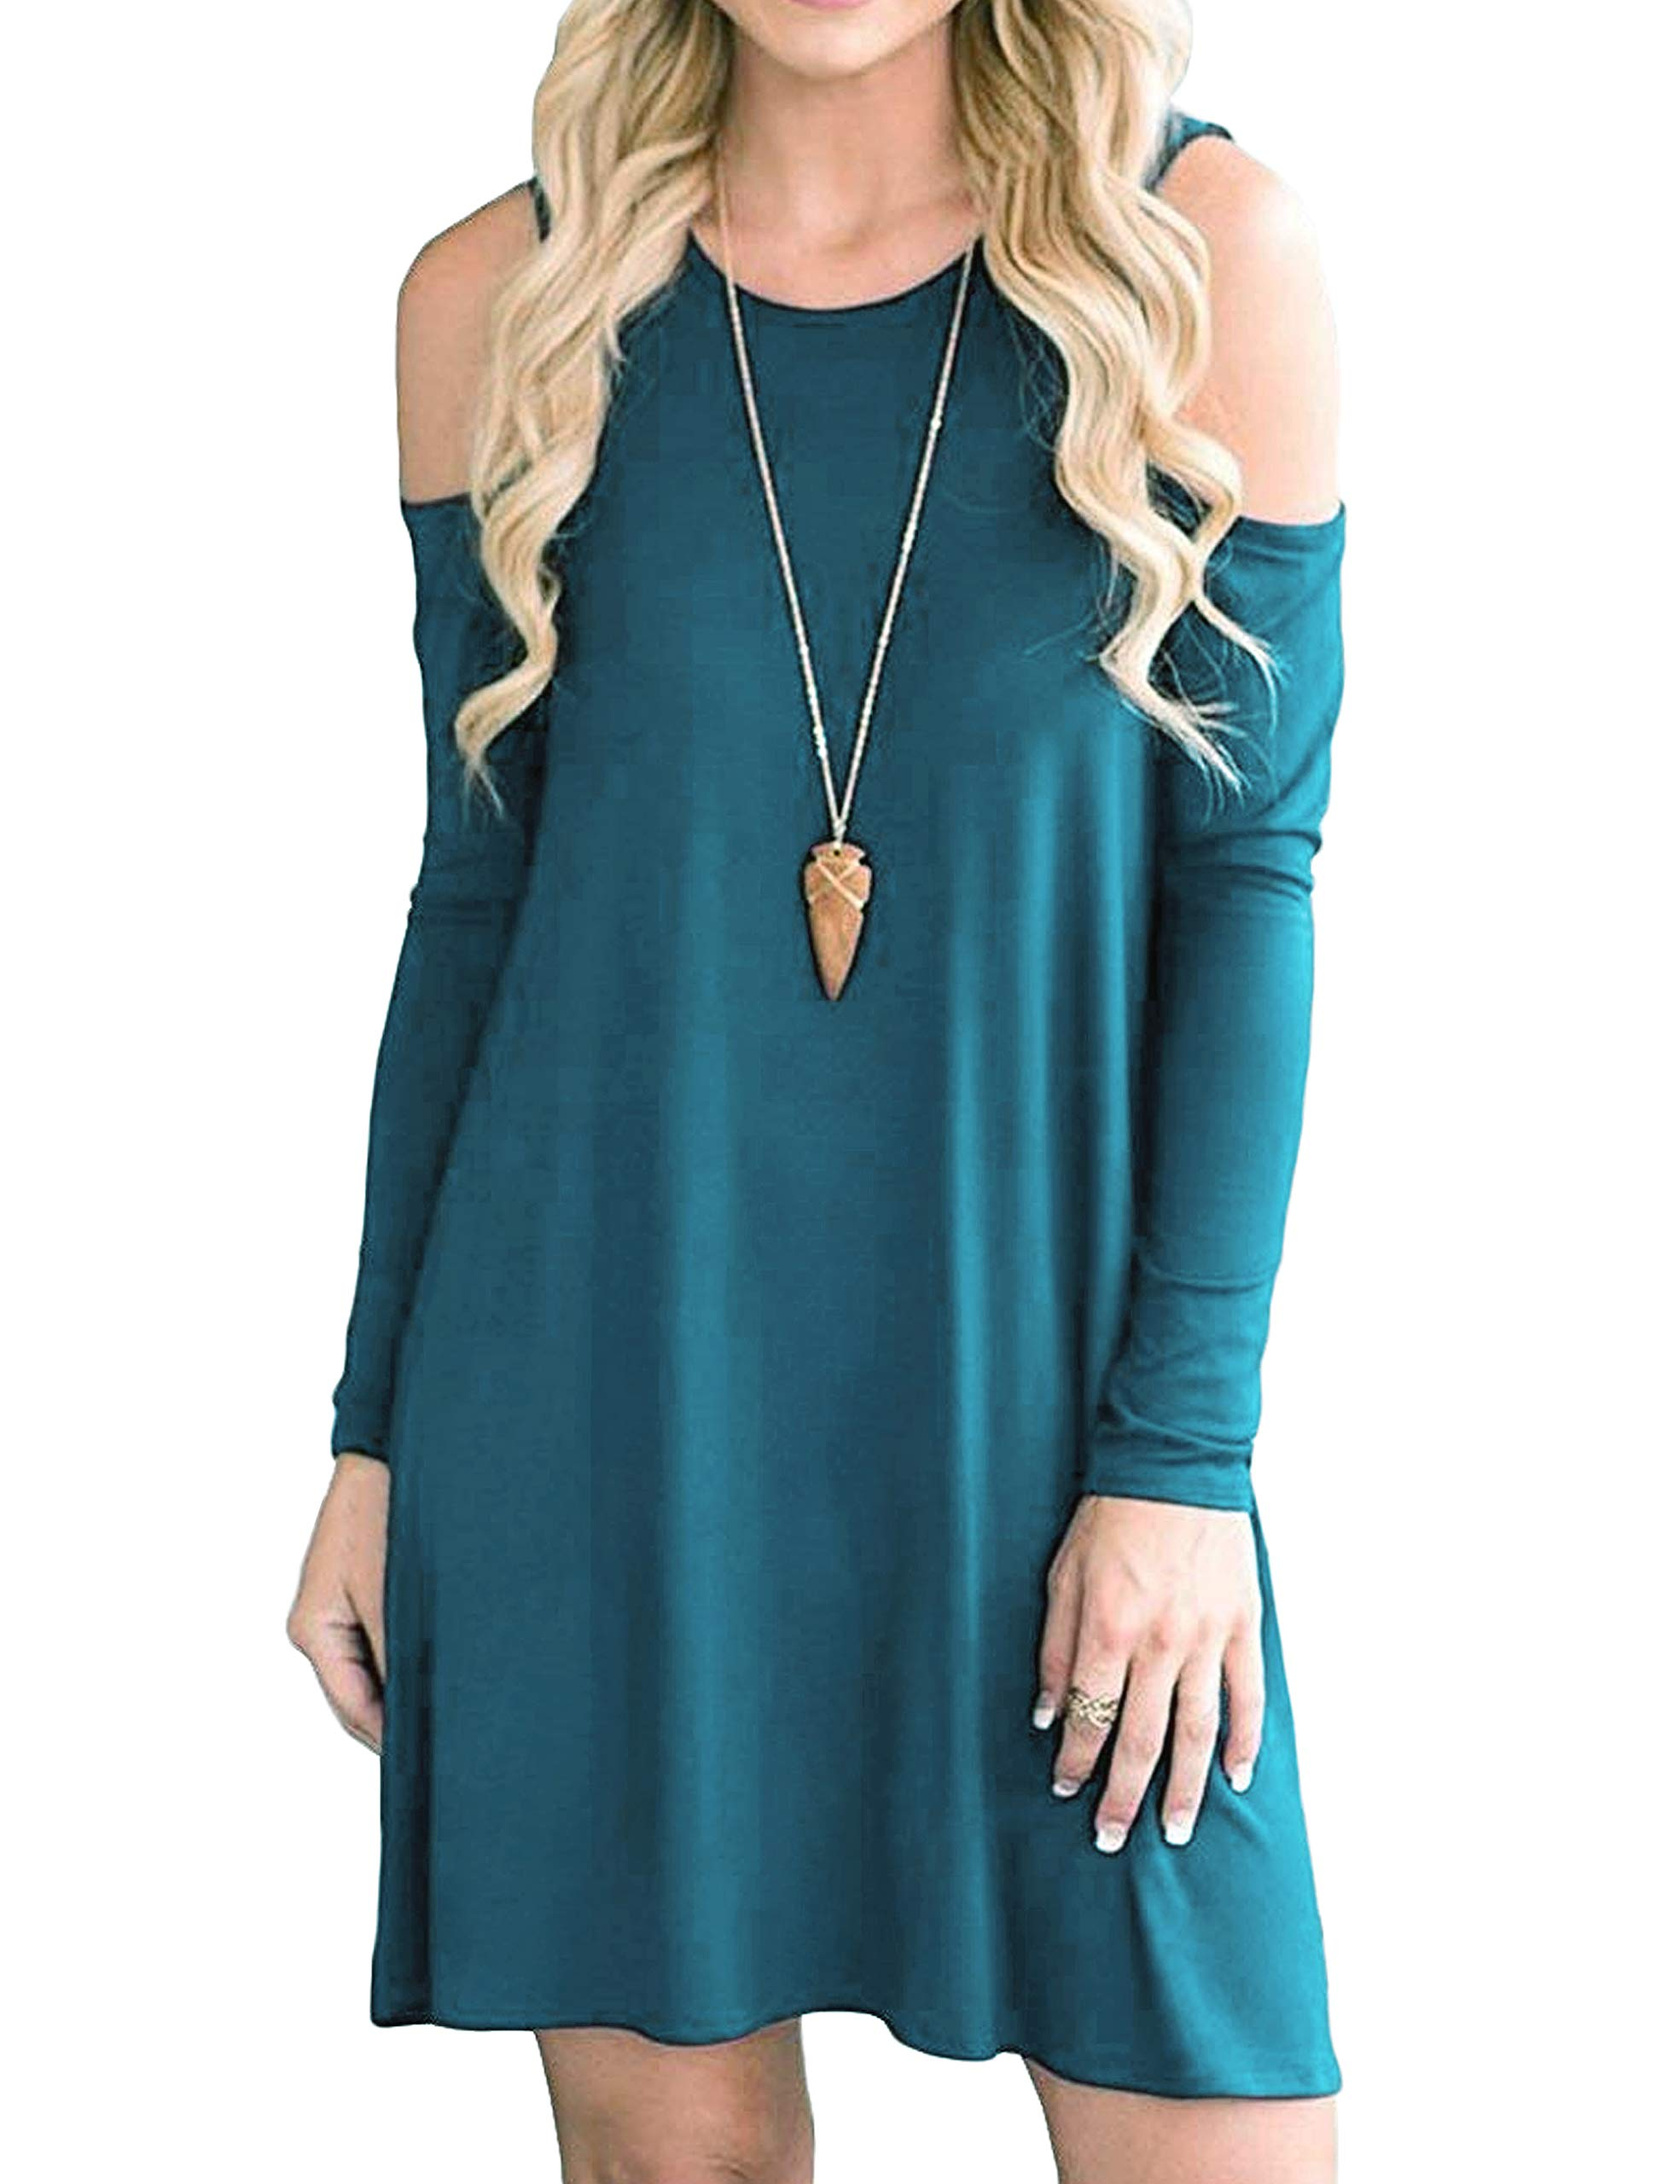 Available at Amazon: Aifer Women's Cold Shoulder Tunic Top Loose Casual Swing T-Shirt Dresses with Pockets